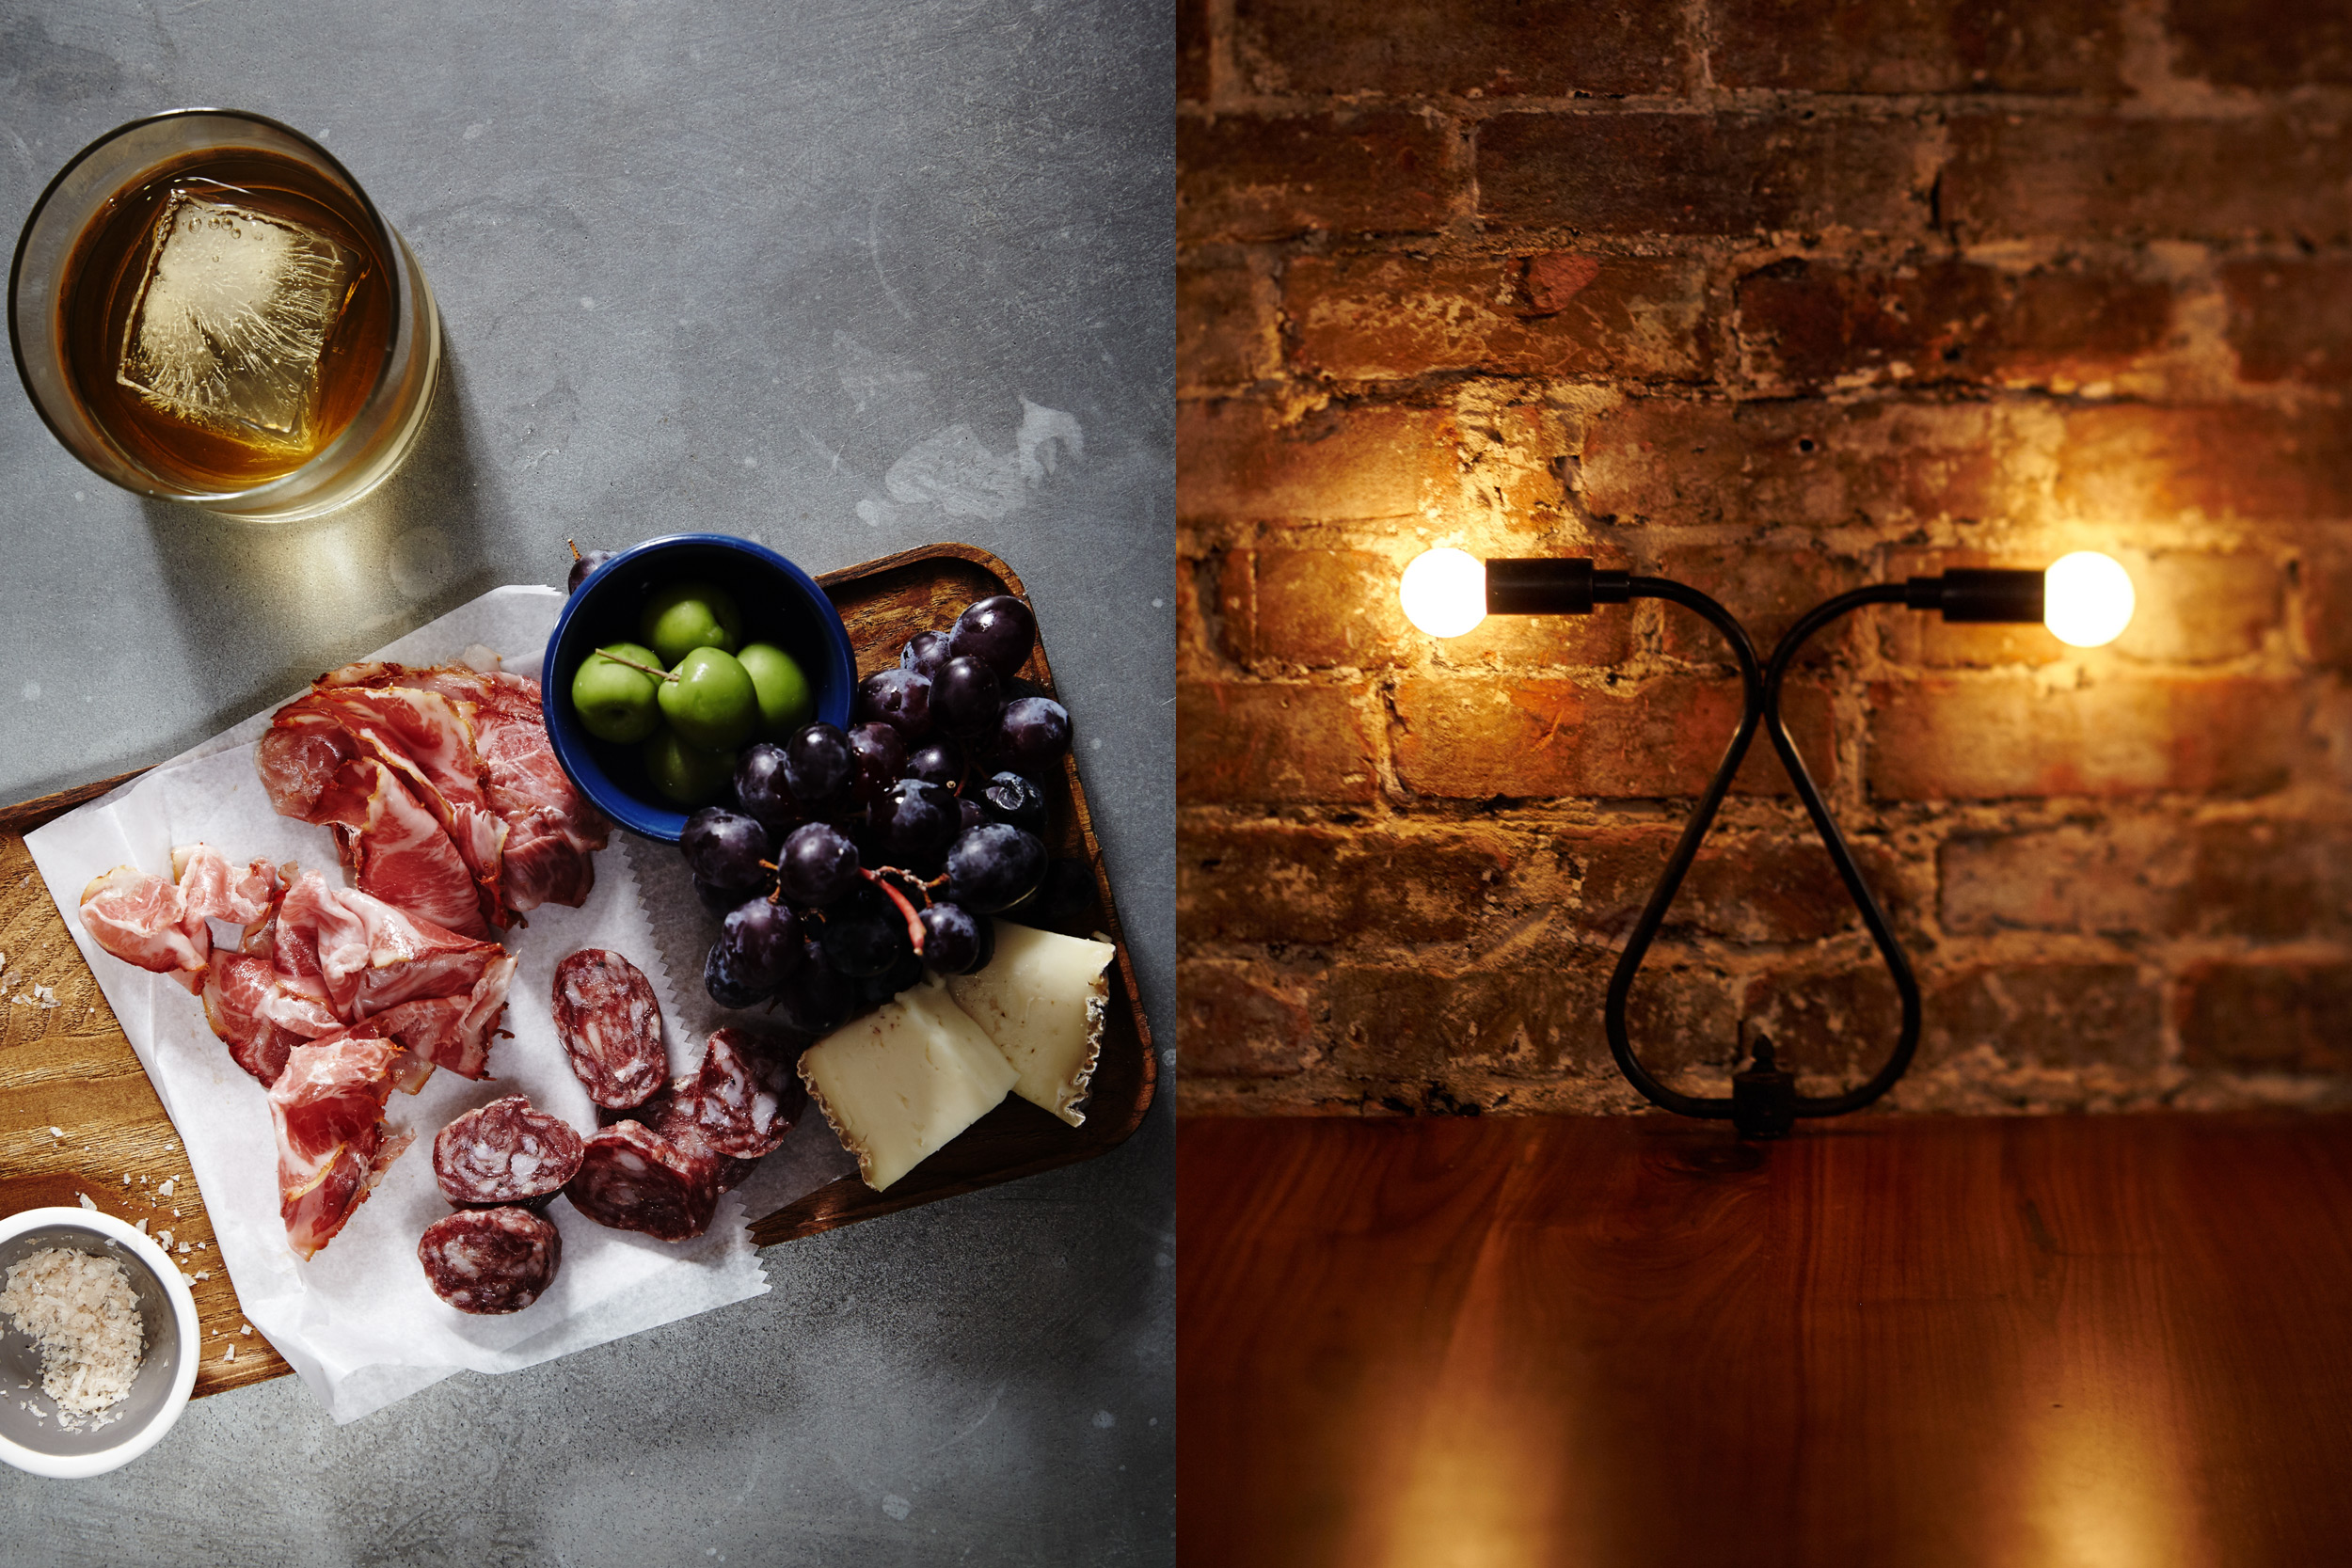 Drexlers_Charcuterie_Cocktails_Cheese_01.jpg